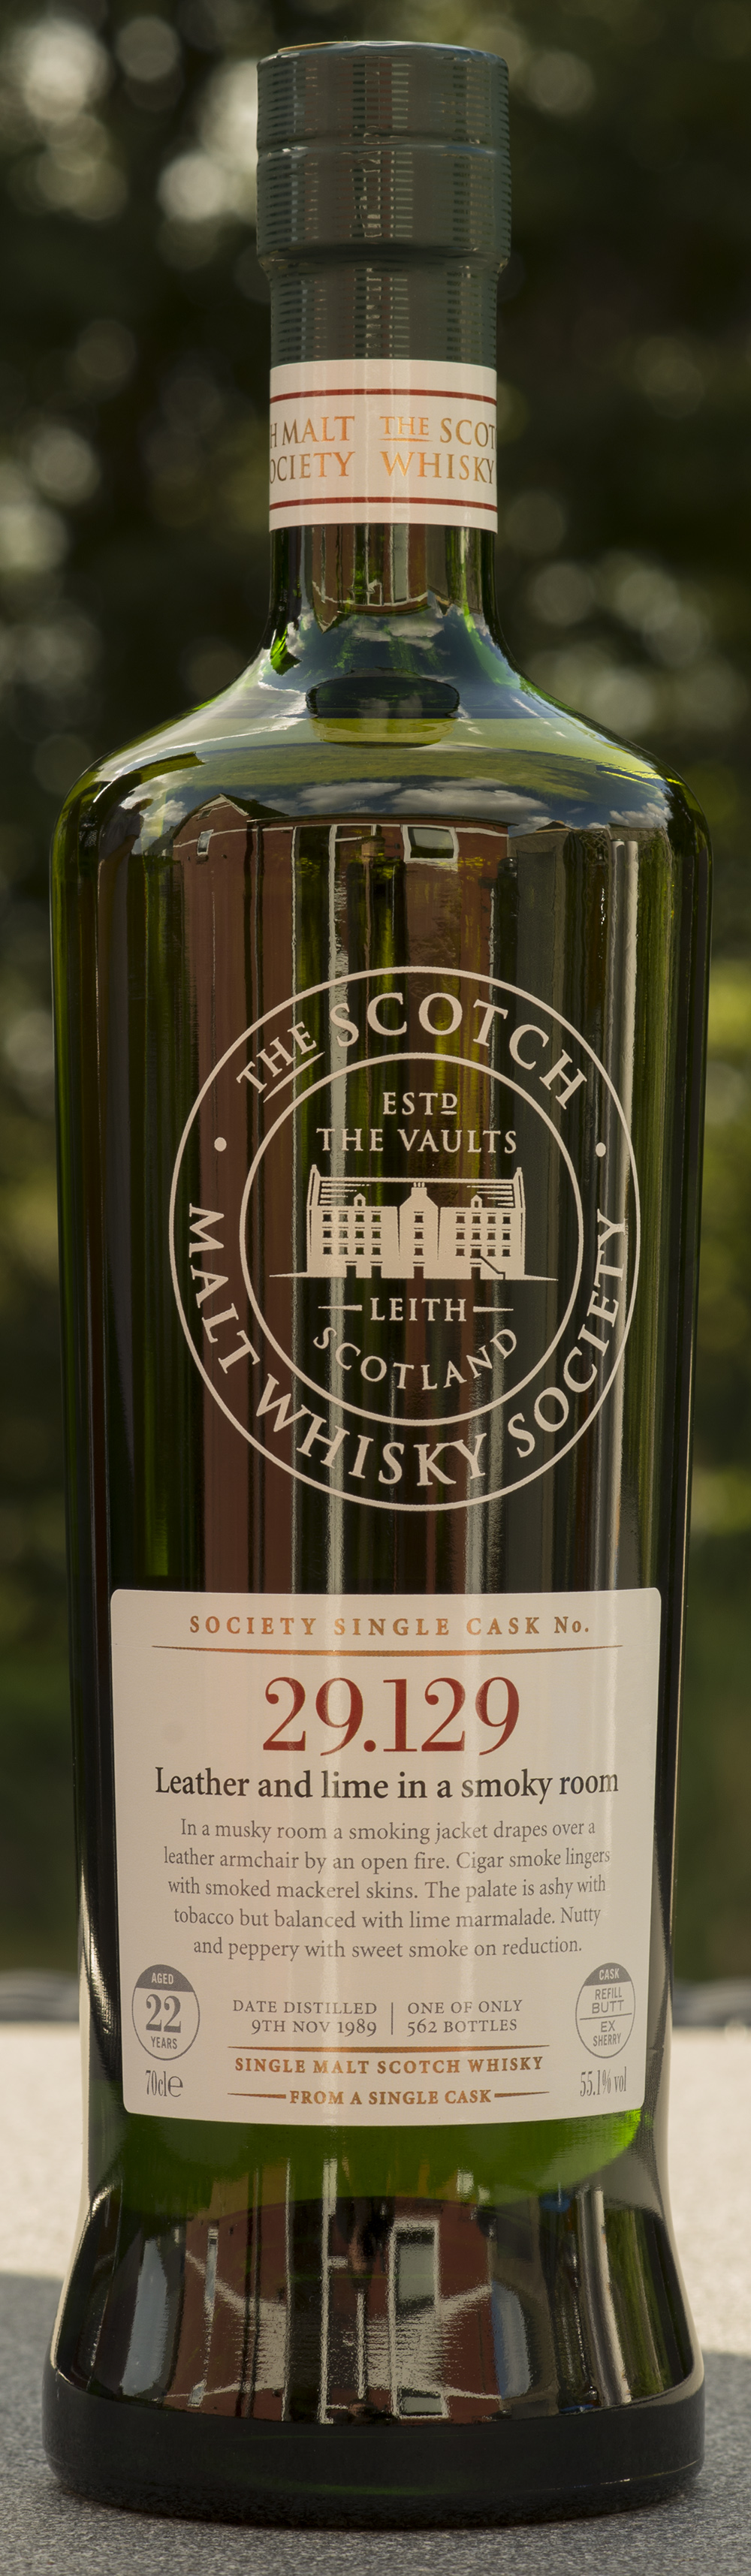 Billede: DSC_3341 SMWS 29.129 - Leather and lime in a smoky room - bottle front.jpg